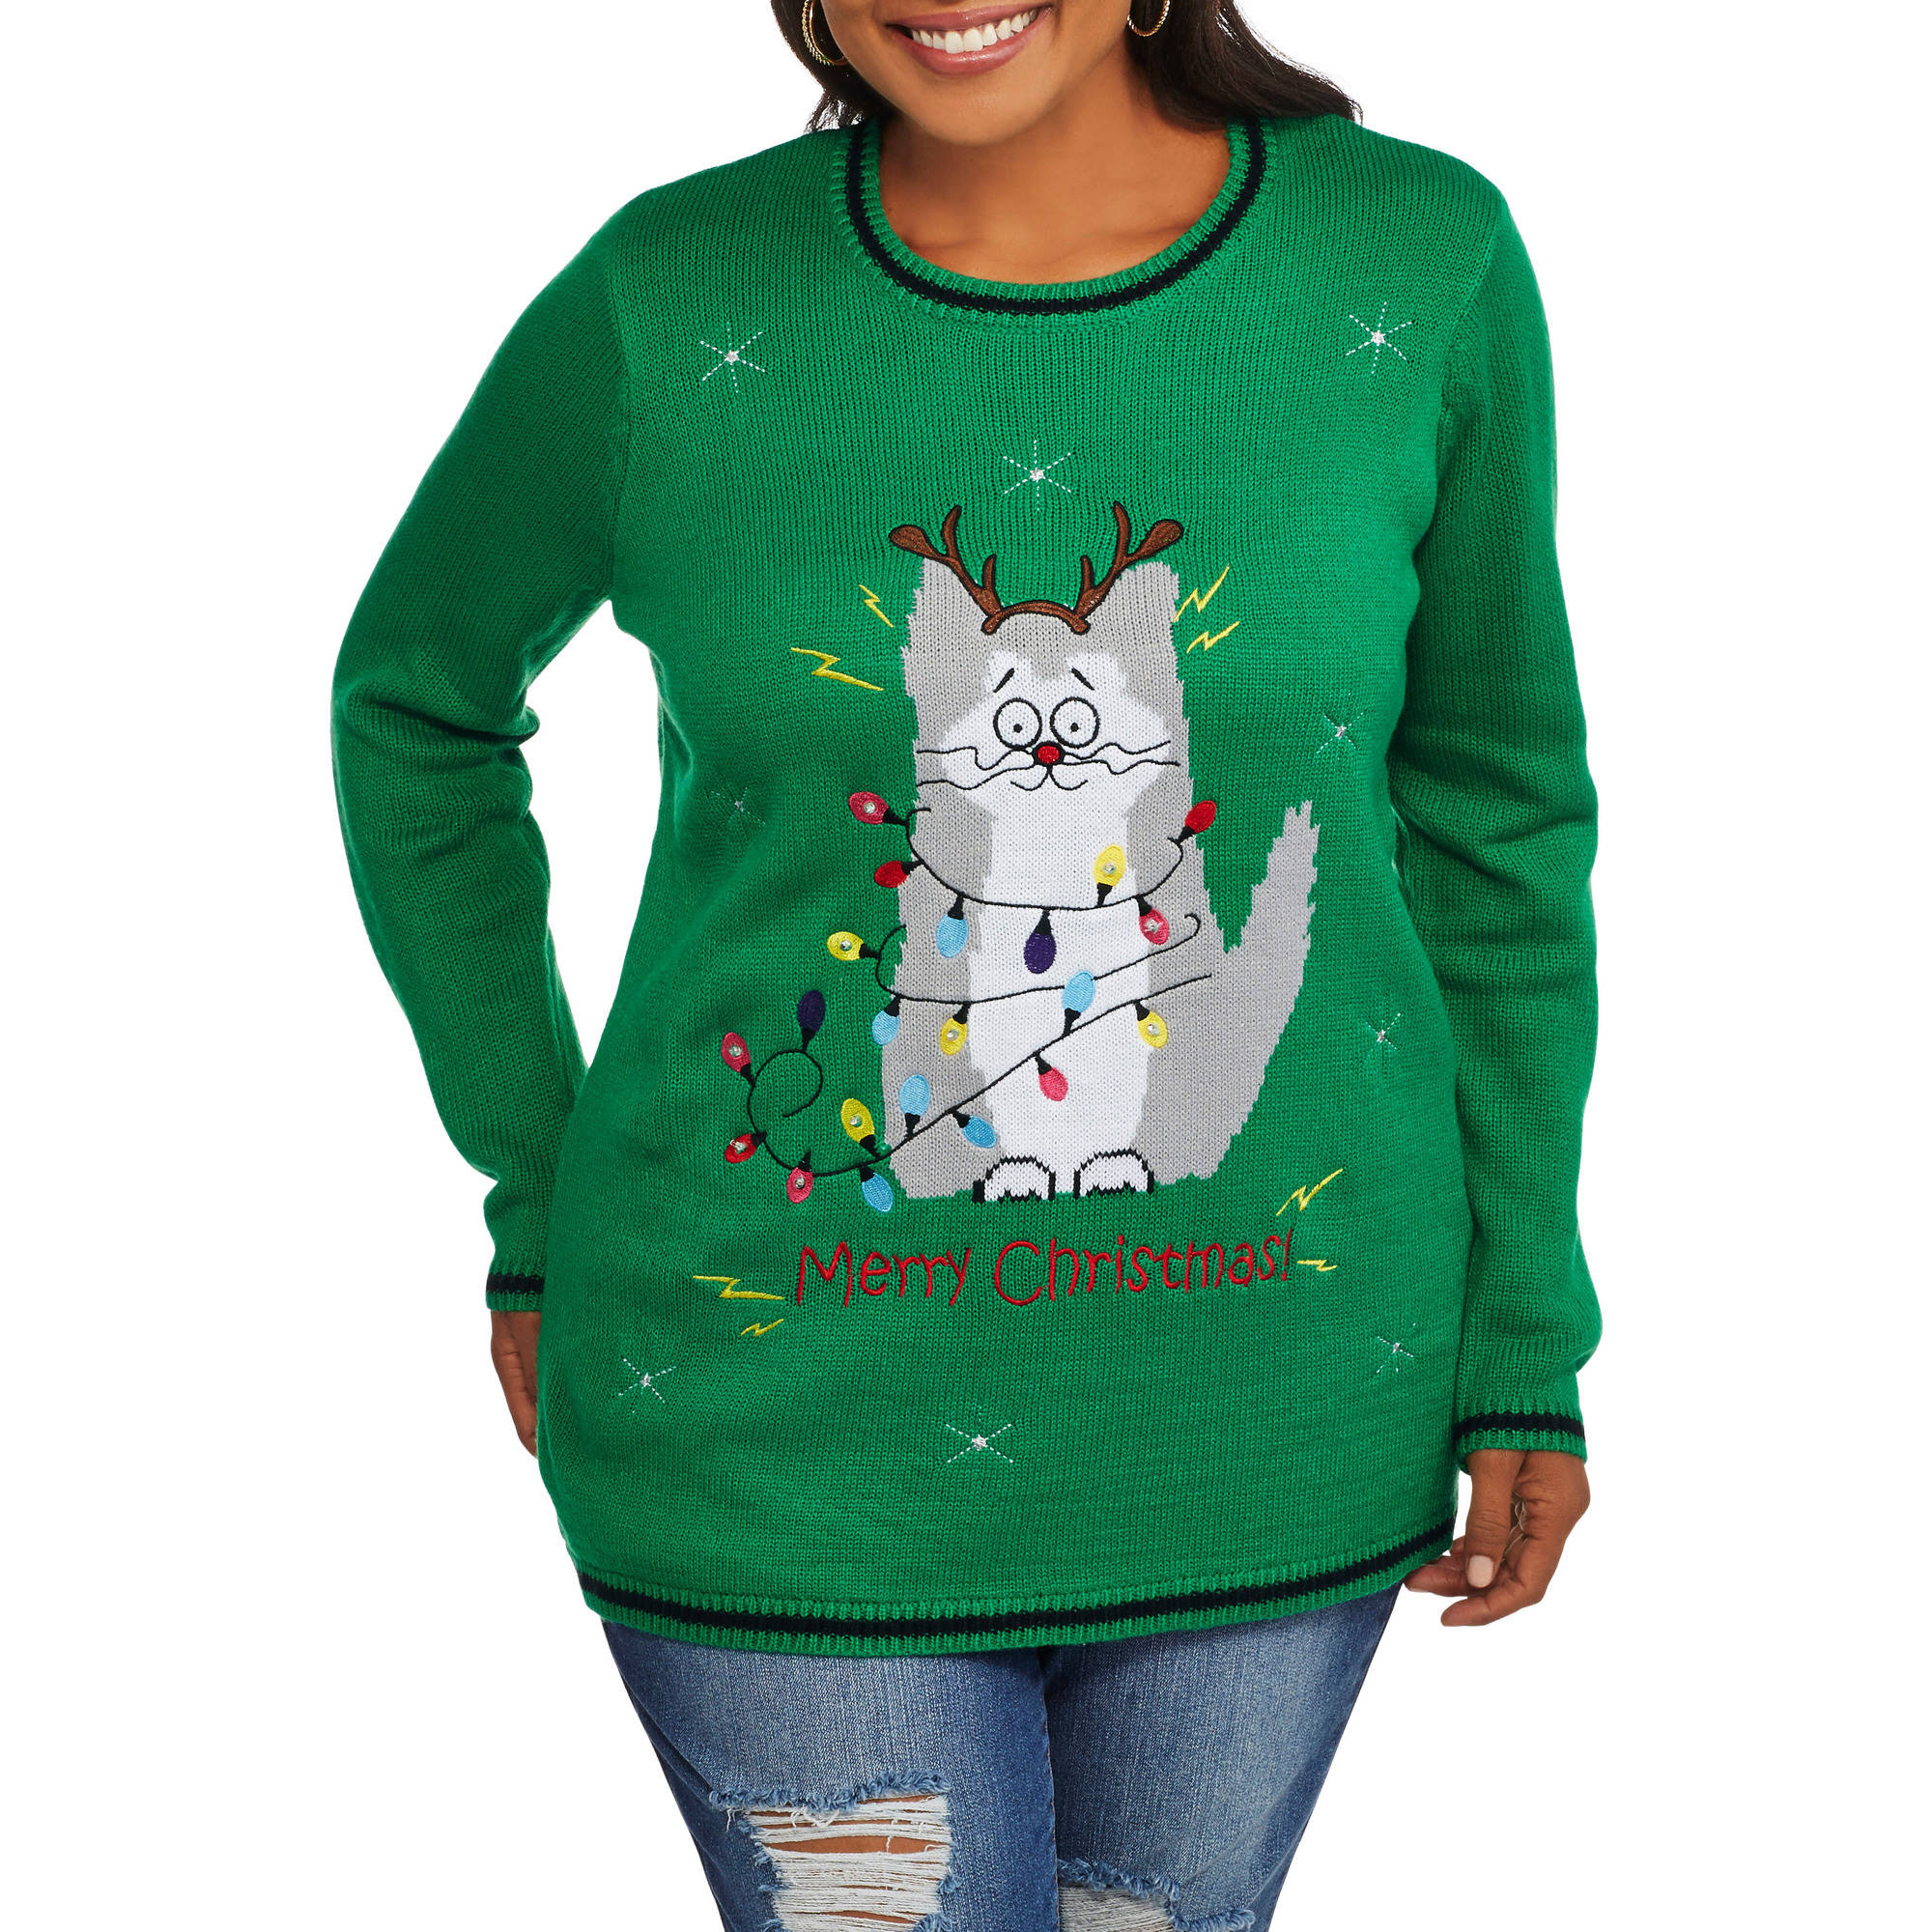 holiday time womens plus christmas sweater with lights light up kitty walmartcom - Lighted Christmas Sweaters